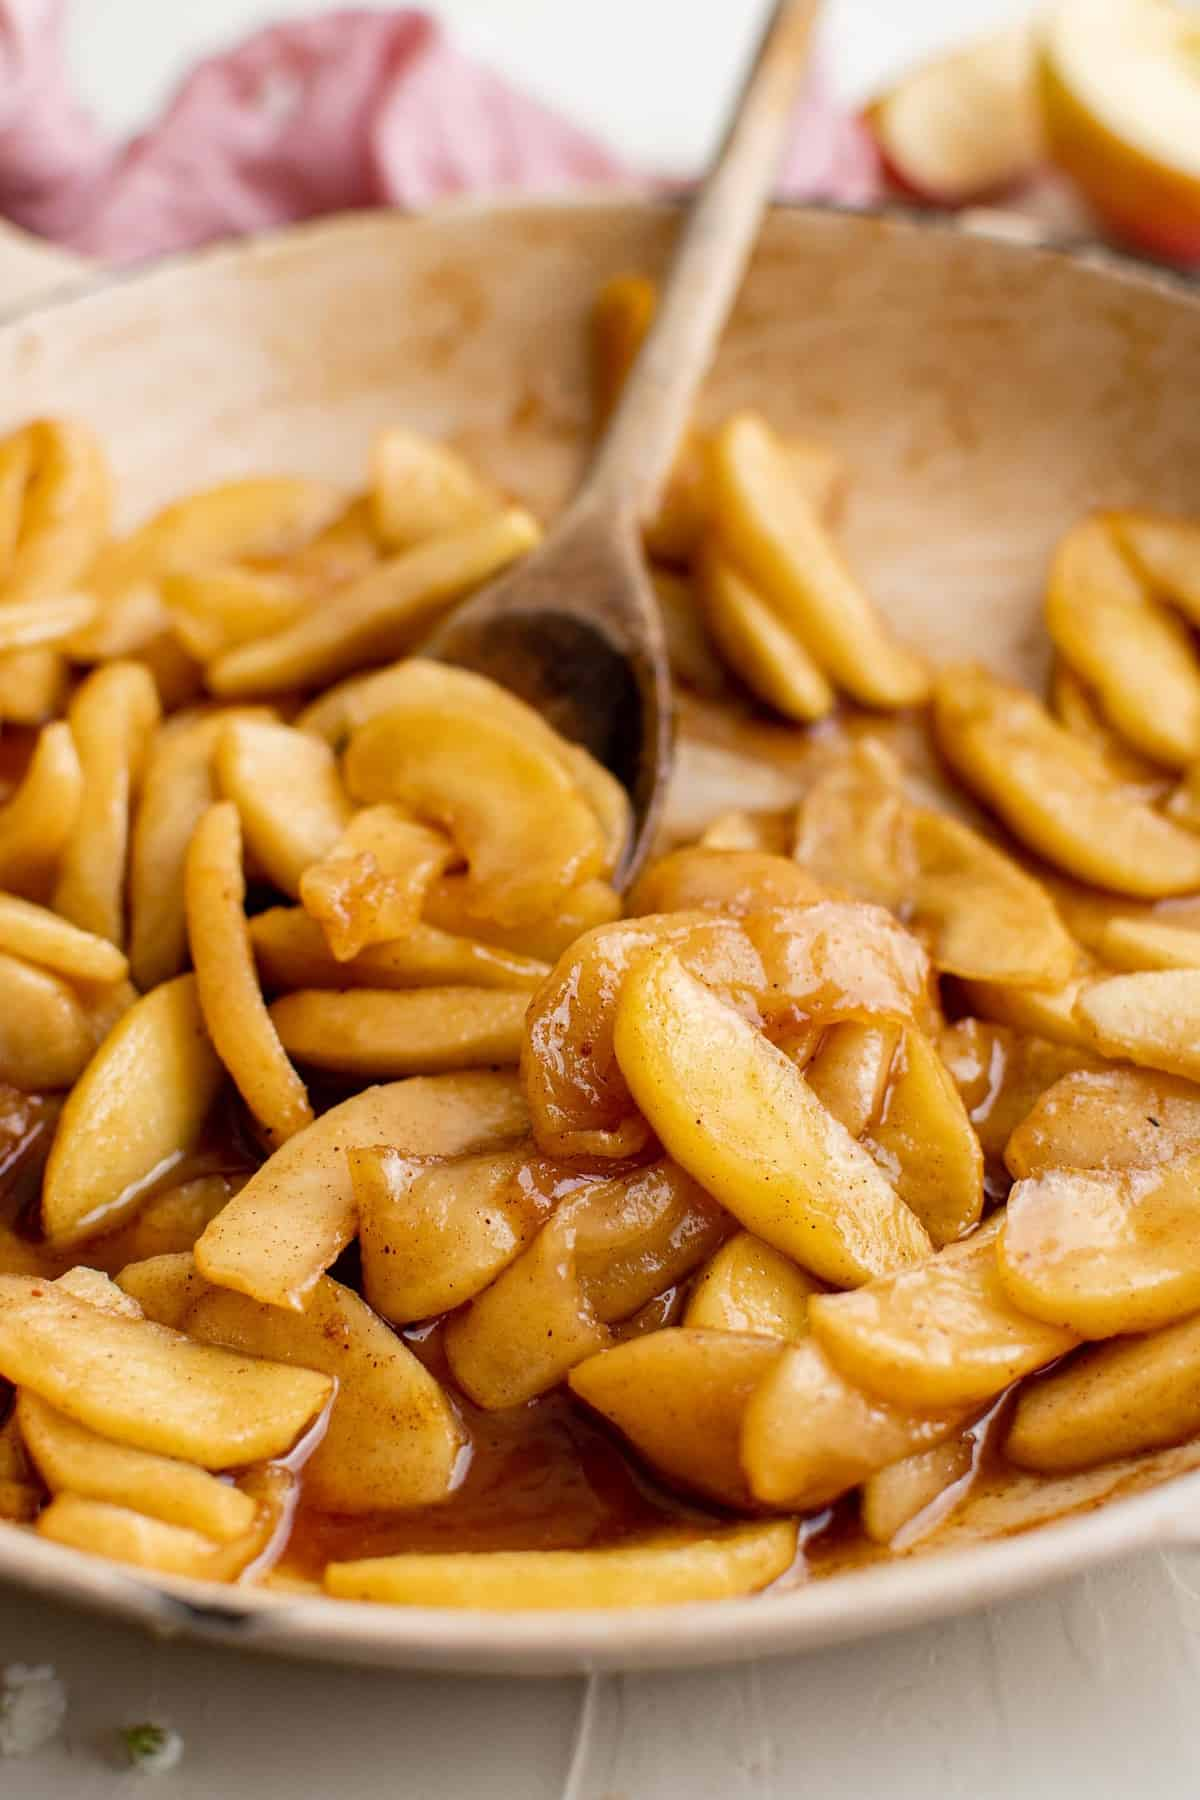 Cooked apples in a frying pan with a wooden spoon.